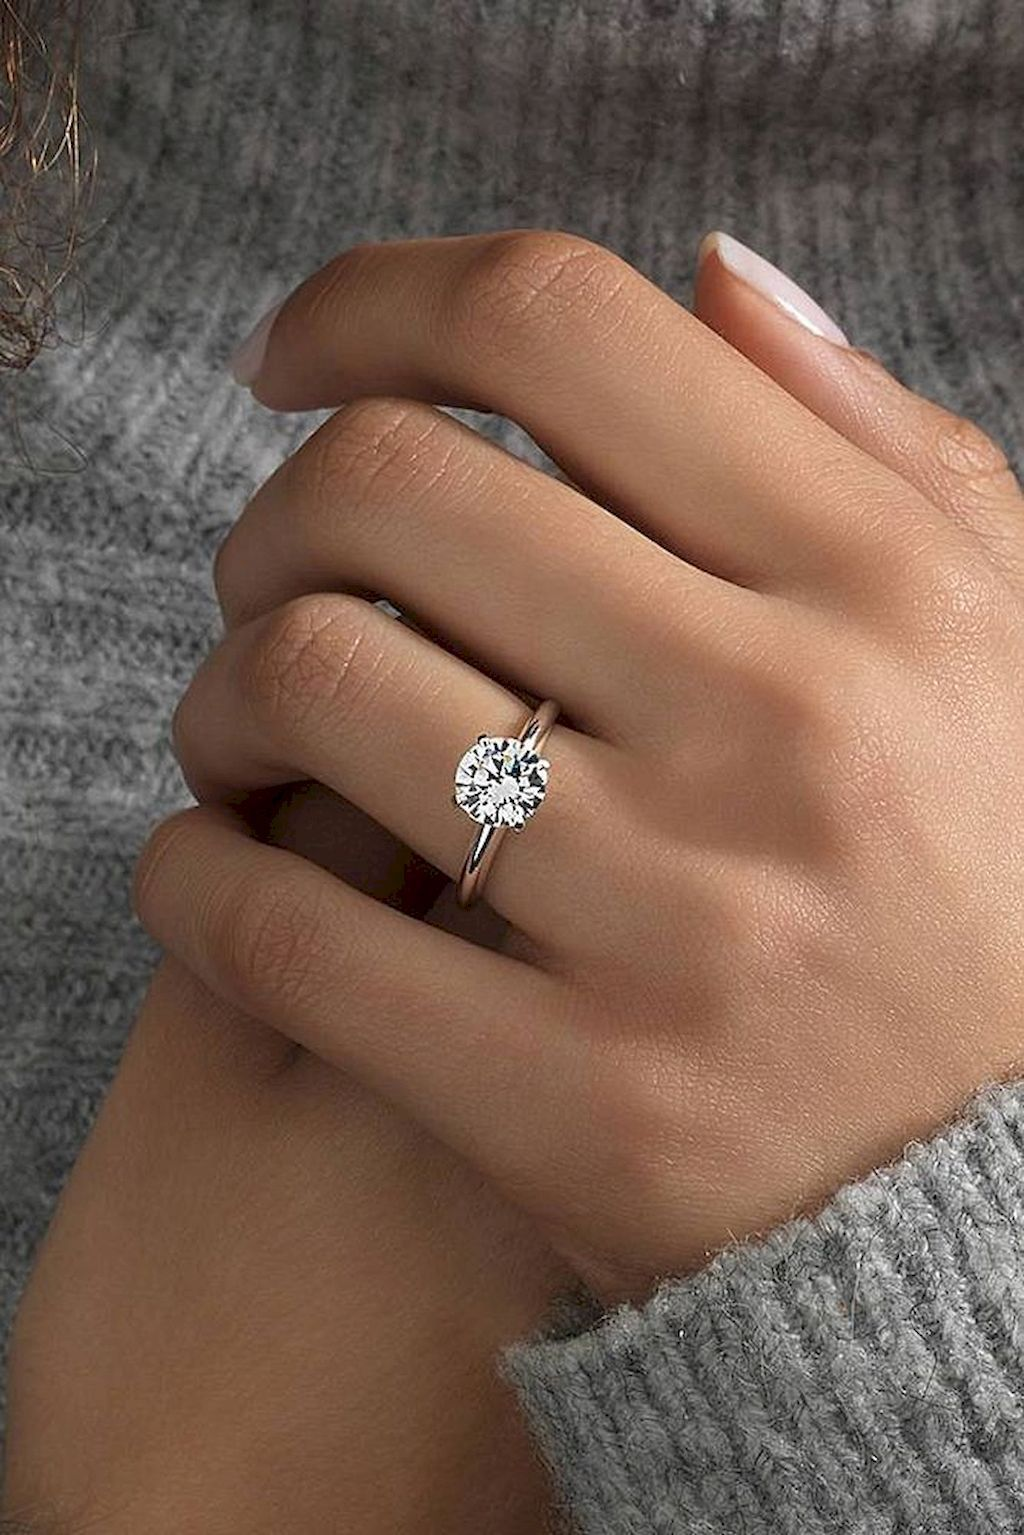 Awesome 56 simple engagement ring for girls who love https